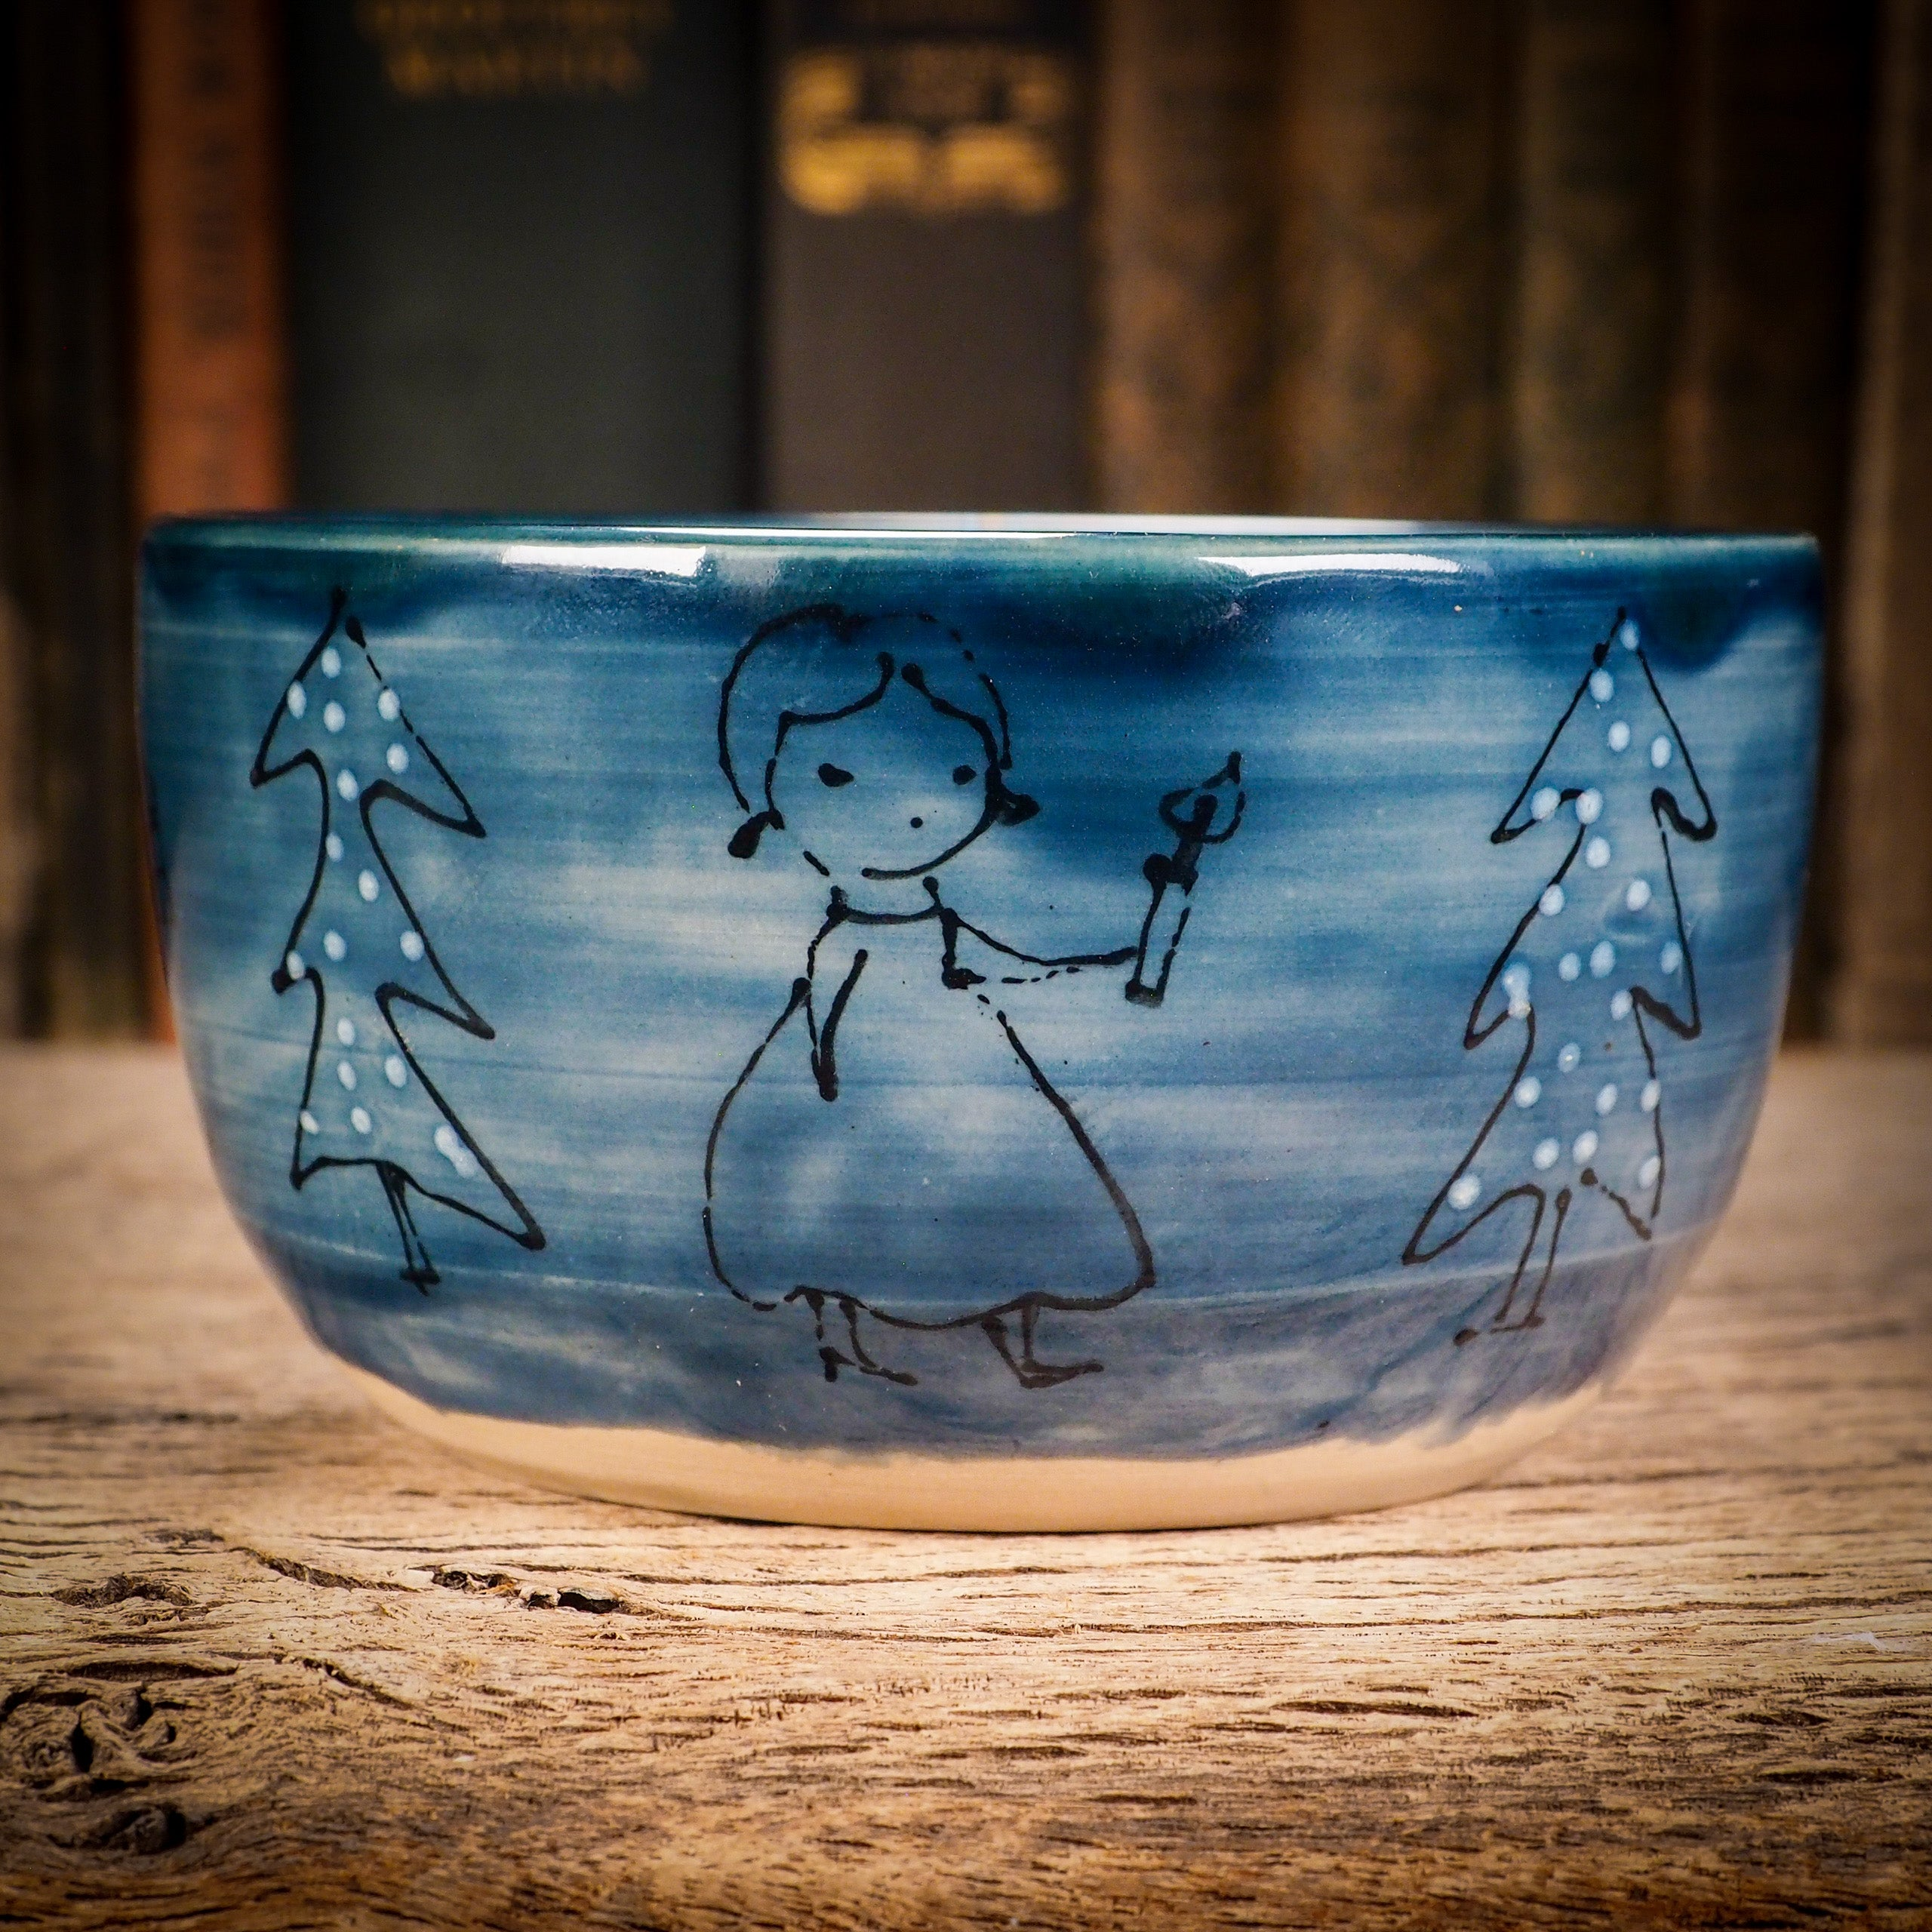 Ready for your Christmas candy and sweets, this original ceramic bowl from Idania Salcido, Danita Art is Handmade glazed ceramic bowl measures 4.5 inches in diameter, hand decorated by the artist with a winter illustration of three girls walking in the forest, just before Christmas.